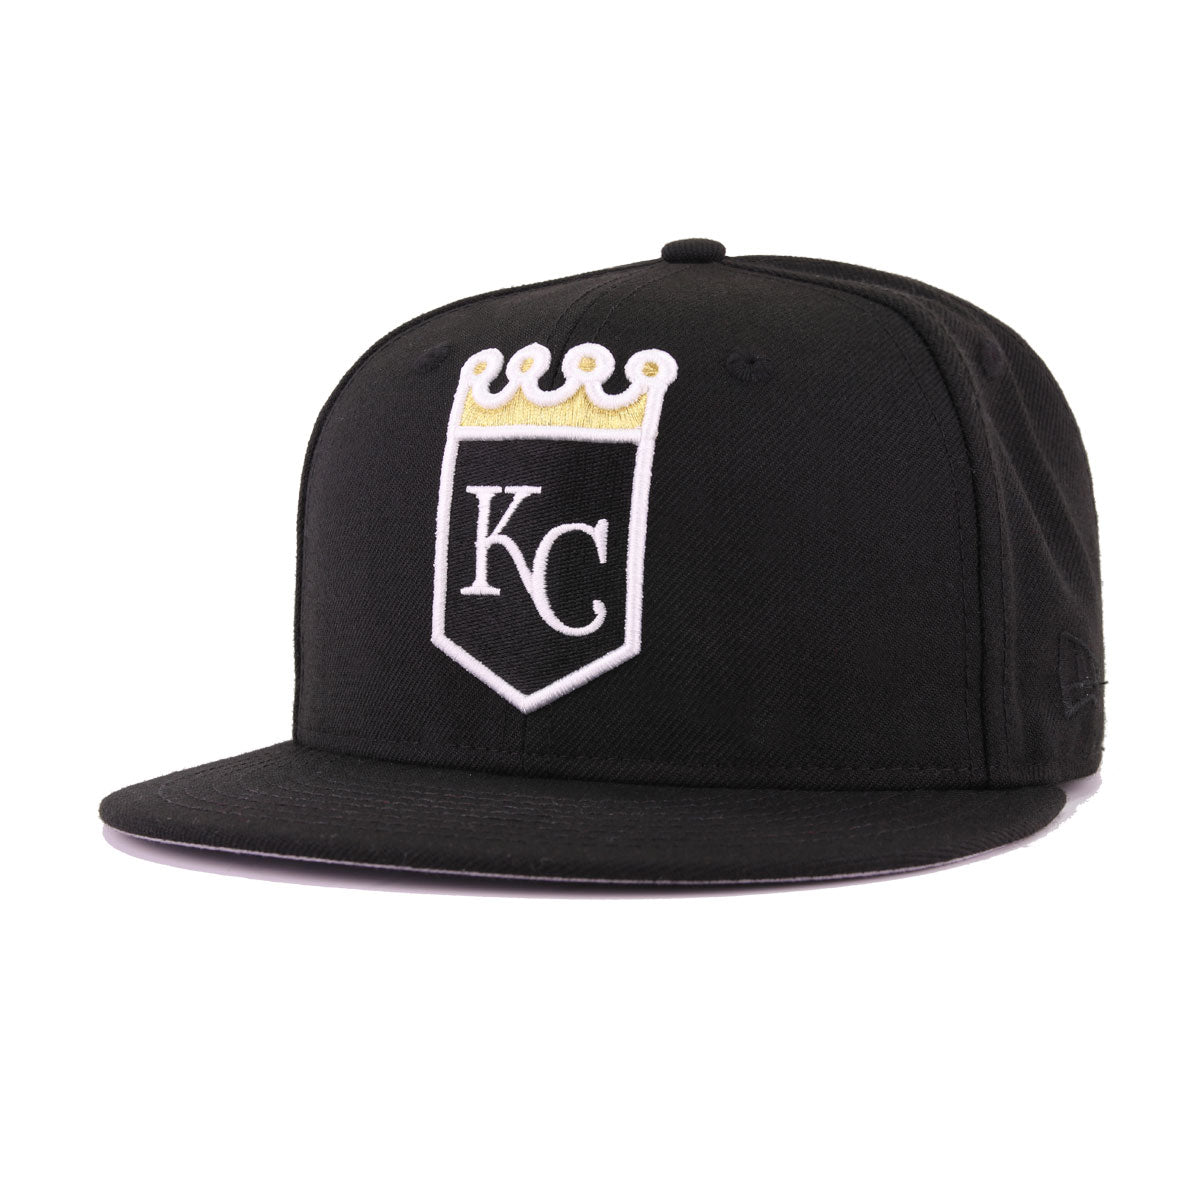 Kansas City Royals Black Metallic Gold New Era 59Fifty Fitted